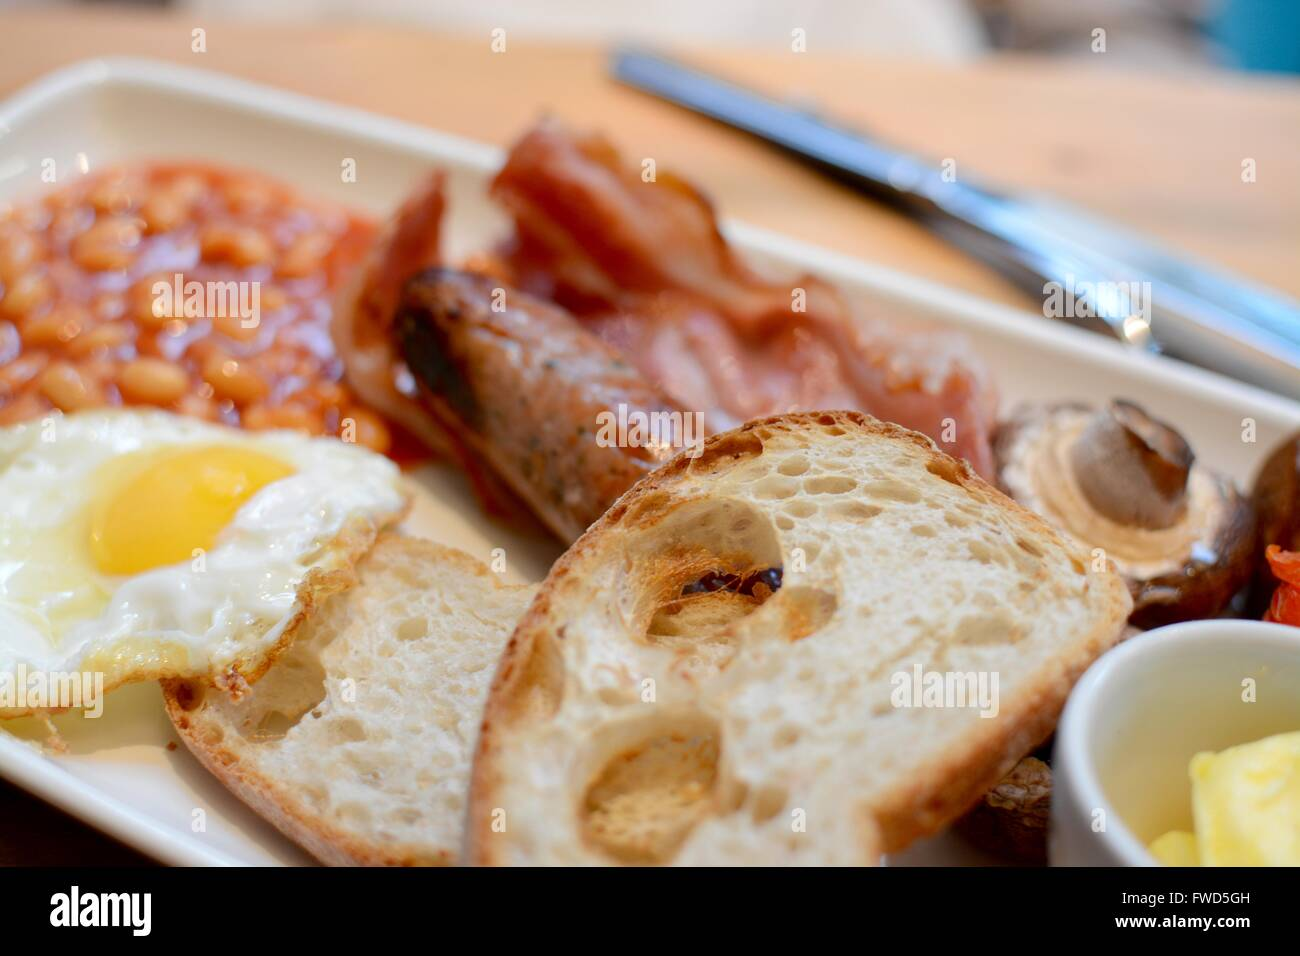 Cooked breakfast with toast, bacon, fried egg, sausage, baked beans, mushroom and butter - filter applied - Stock Image